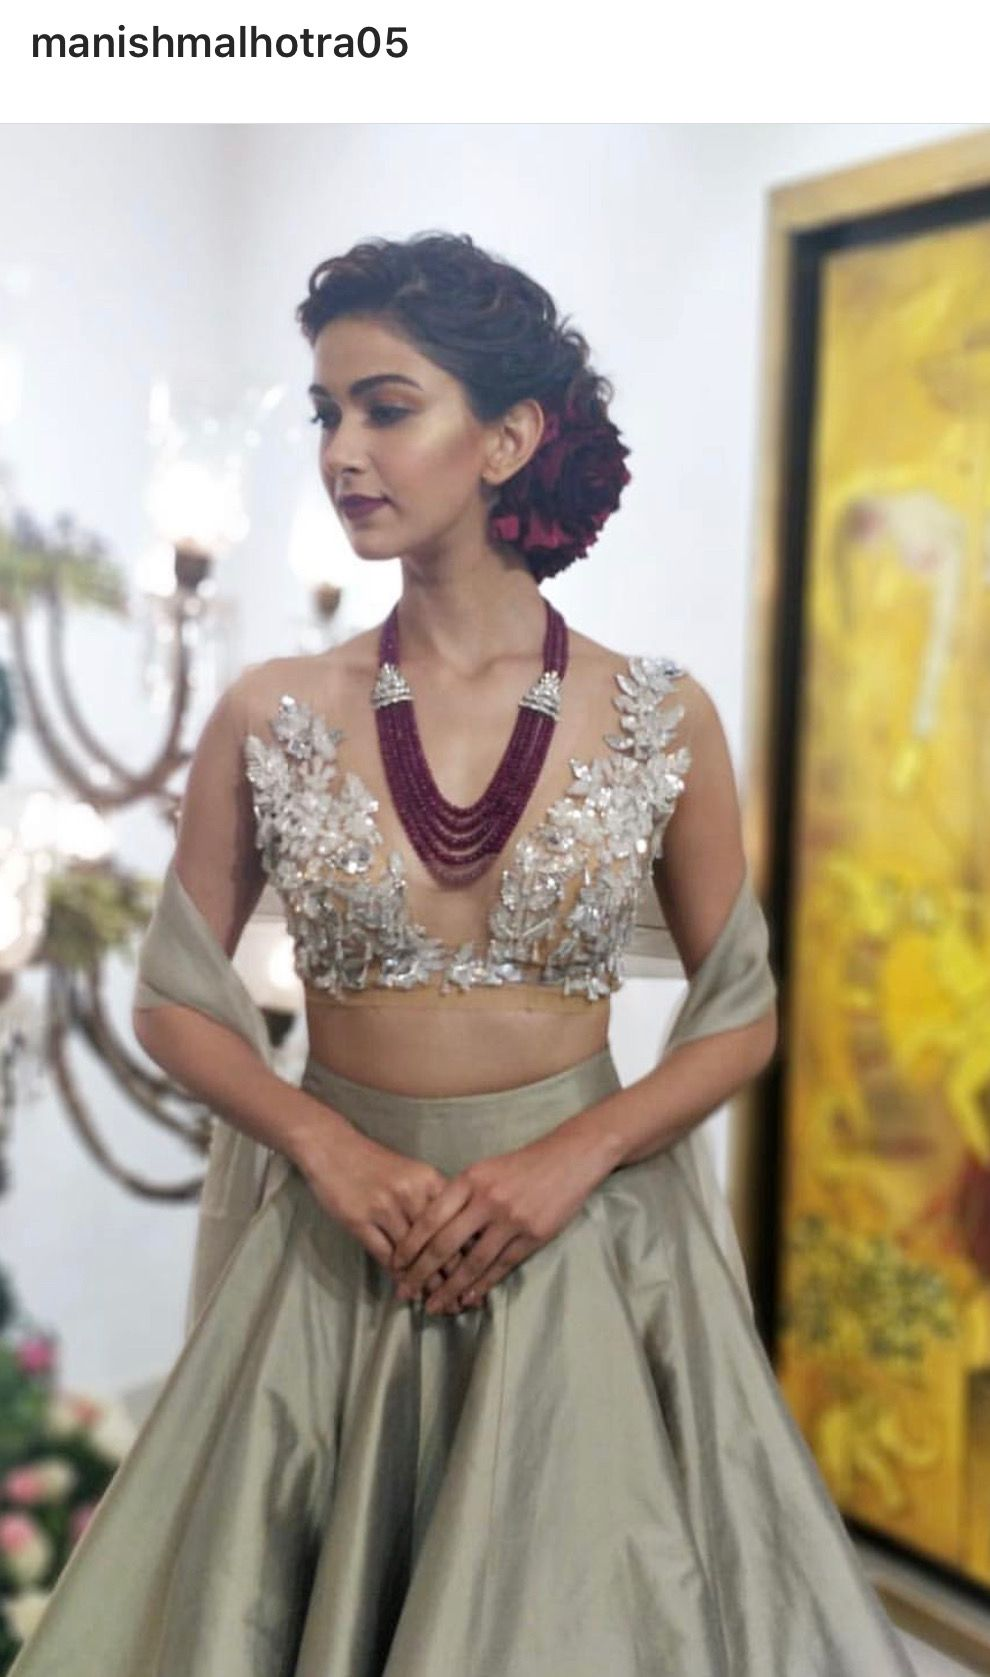 e82542ef31a5 New manish malhotra bridal lehenga prices you need to know today deepika  pinterest and also rh